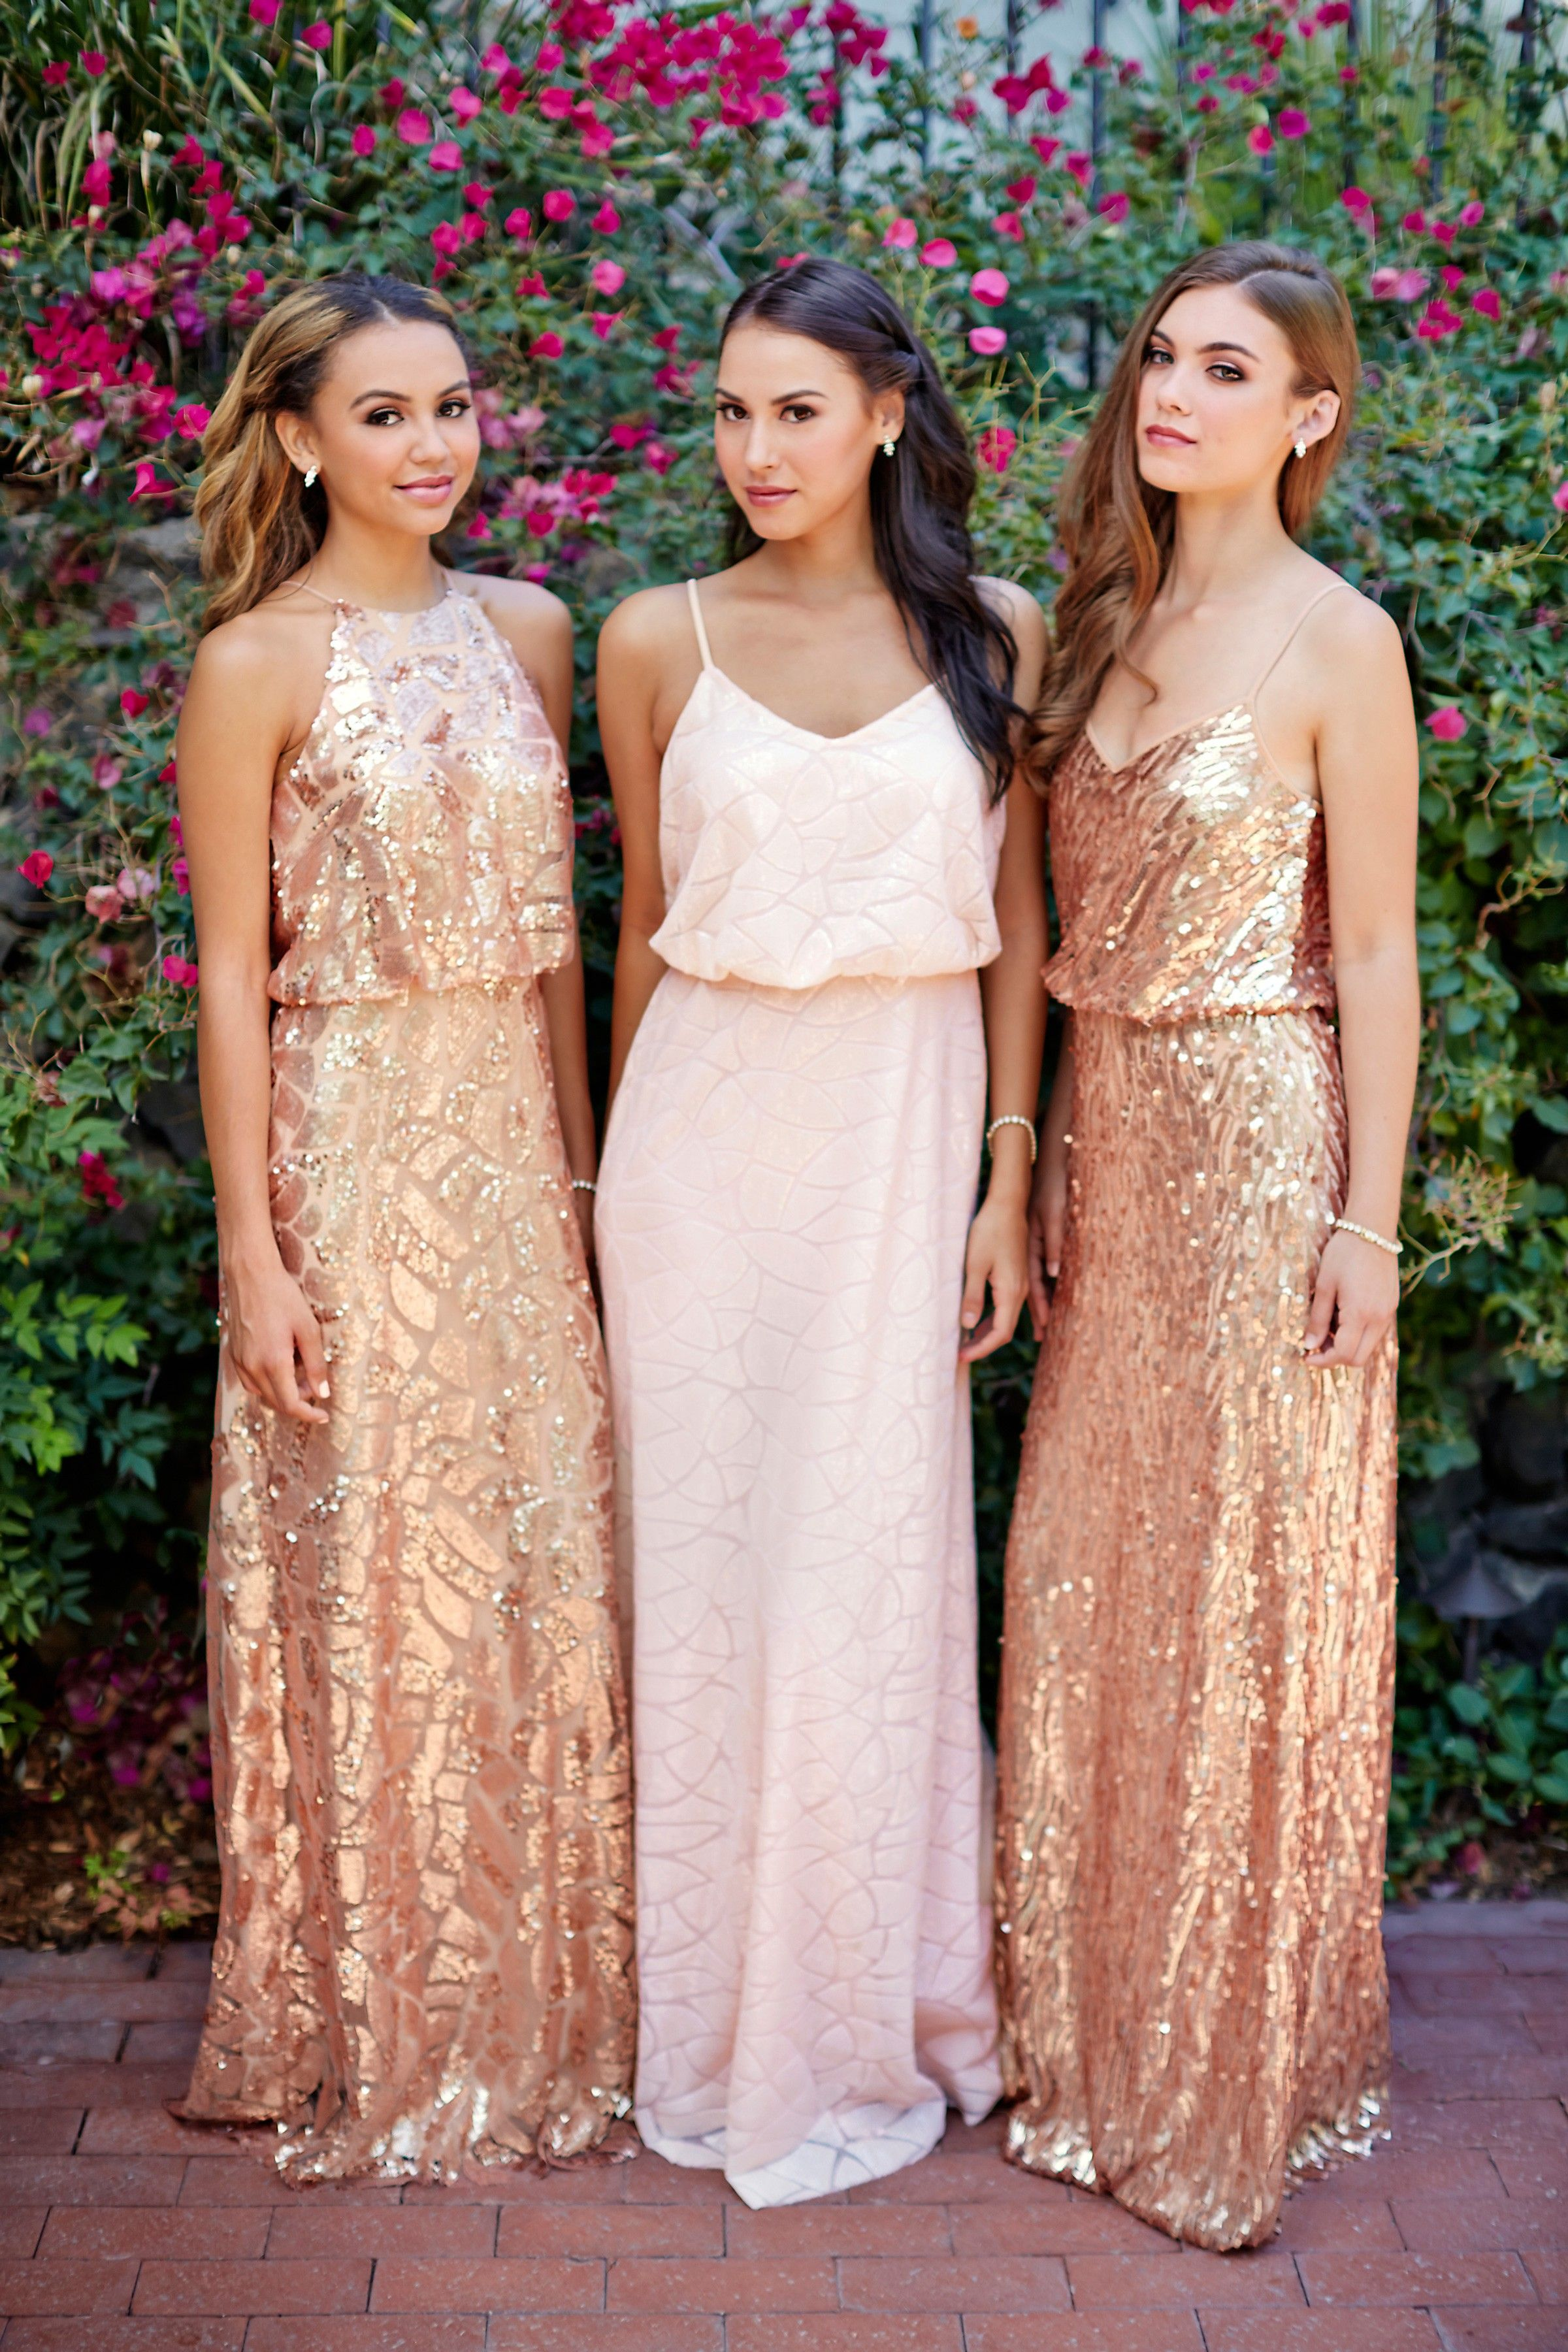 A Floor Length Sequin Bridesmaid Dress With Stry Top Available In Two Colors